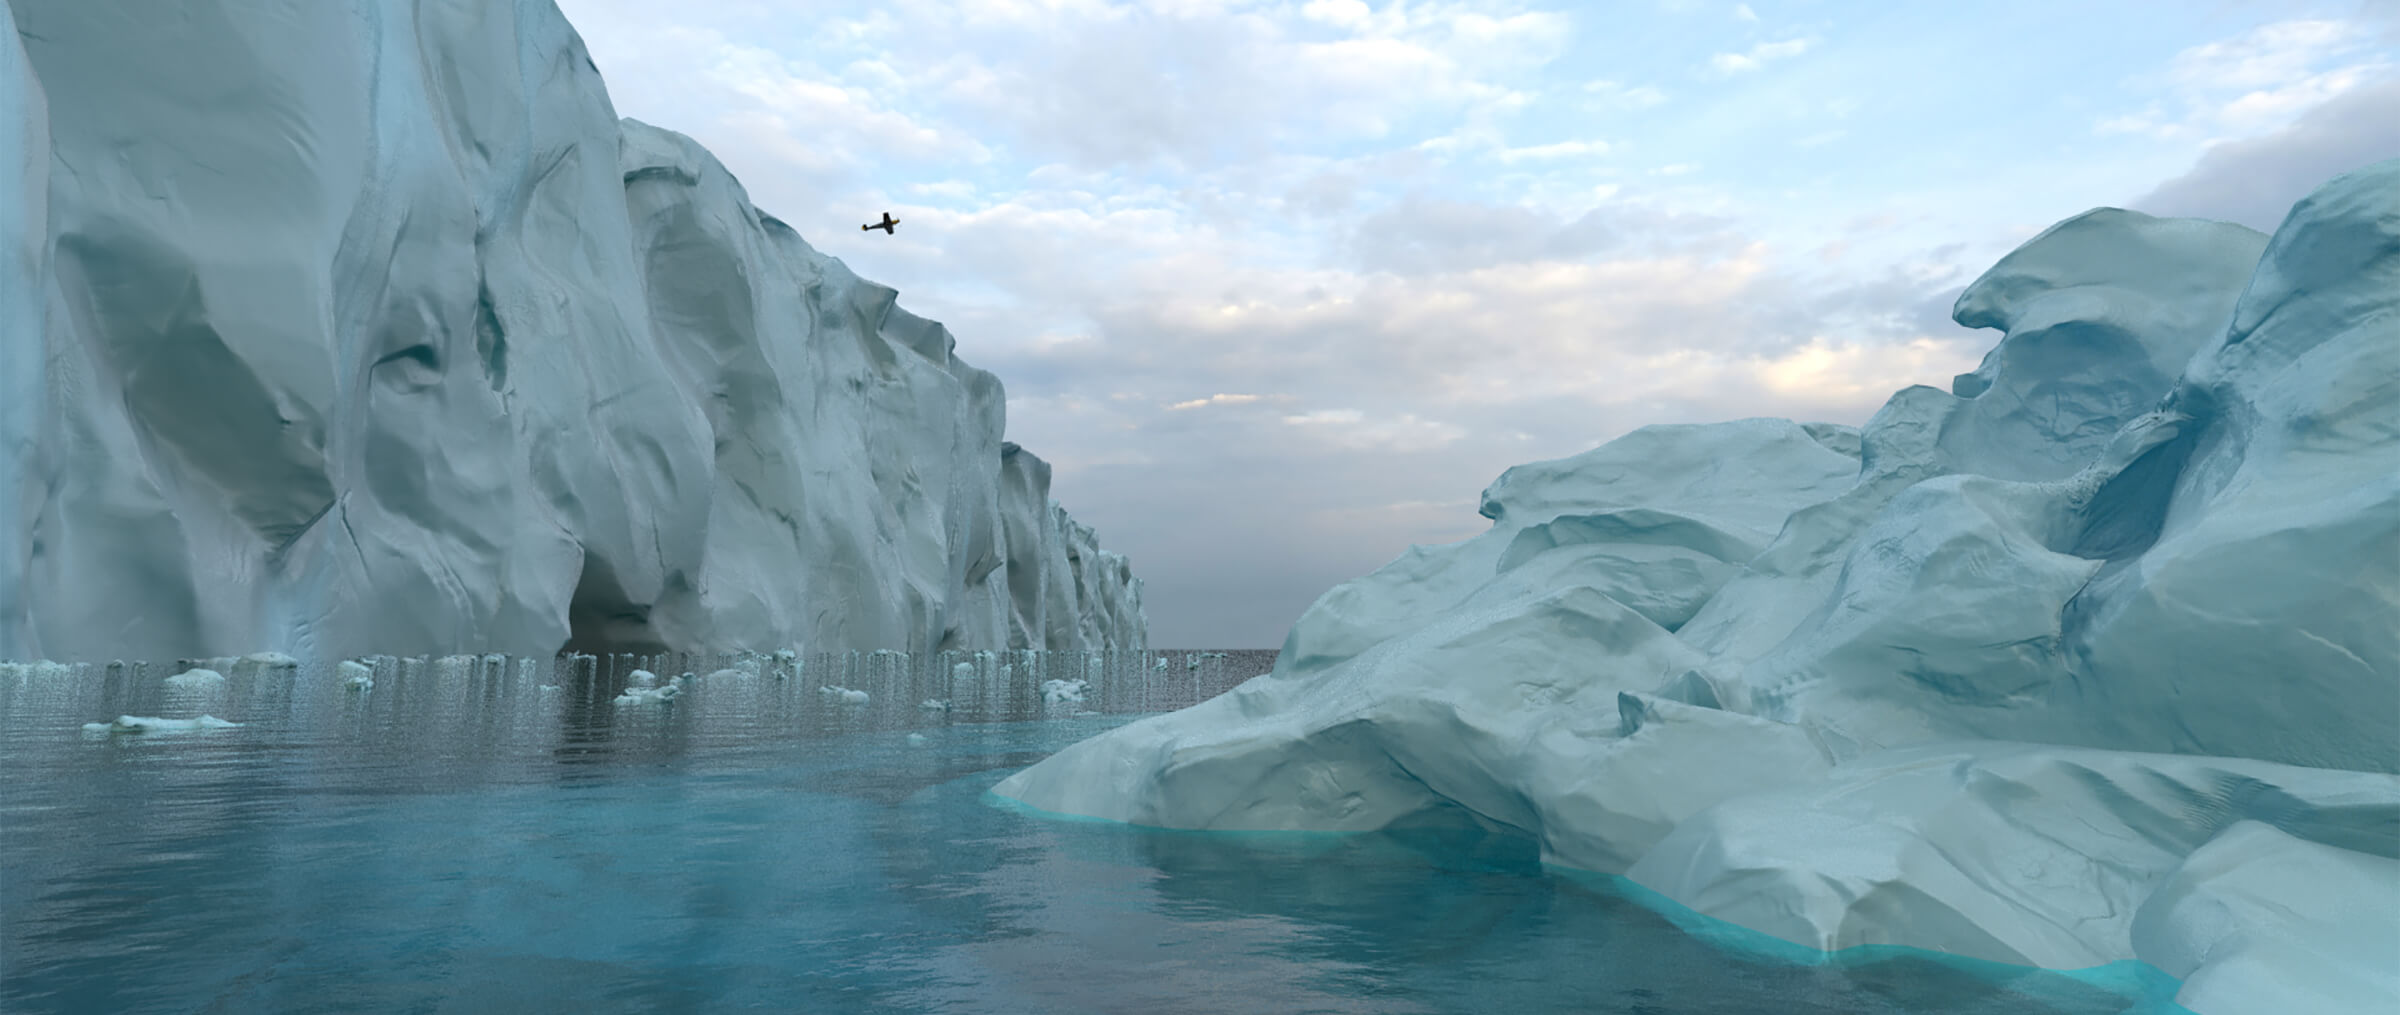 Amorphous glaciers in an arctic environment. Ice chunks flow in the water between them while a plane flies overhead.